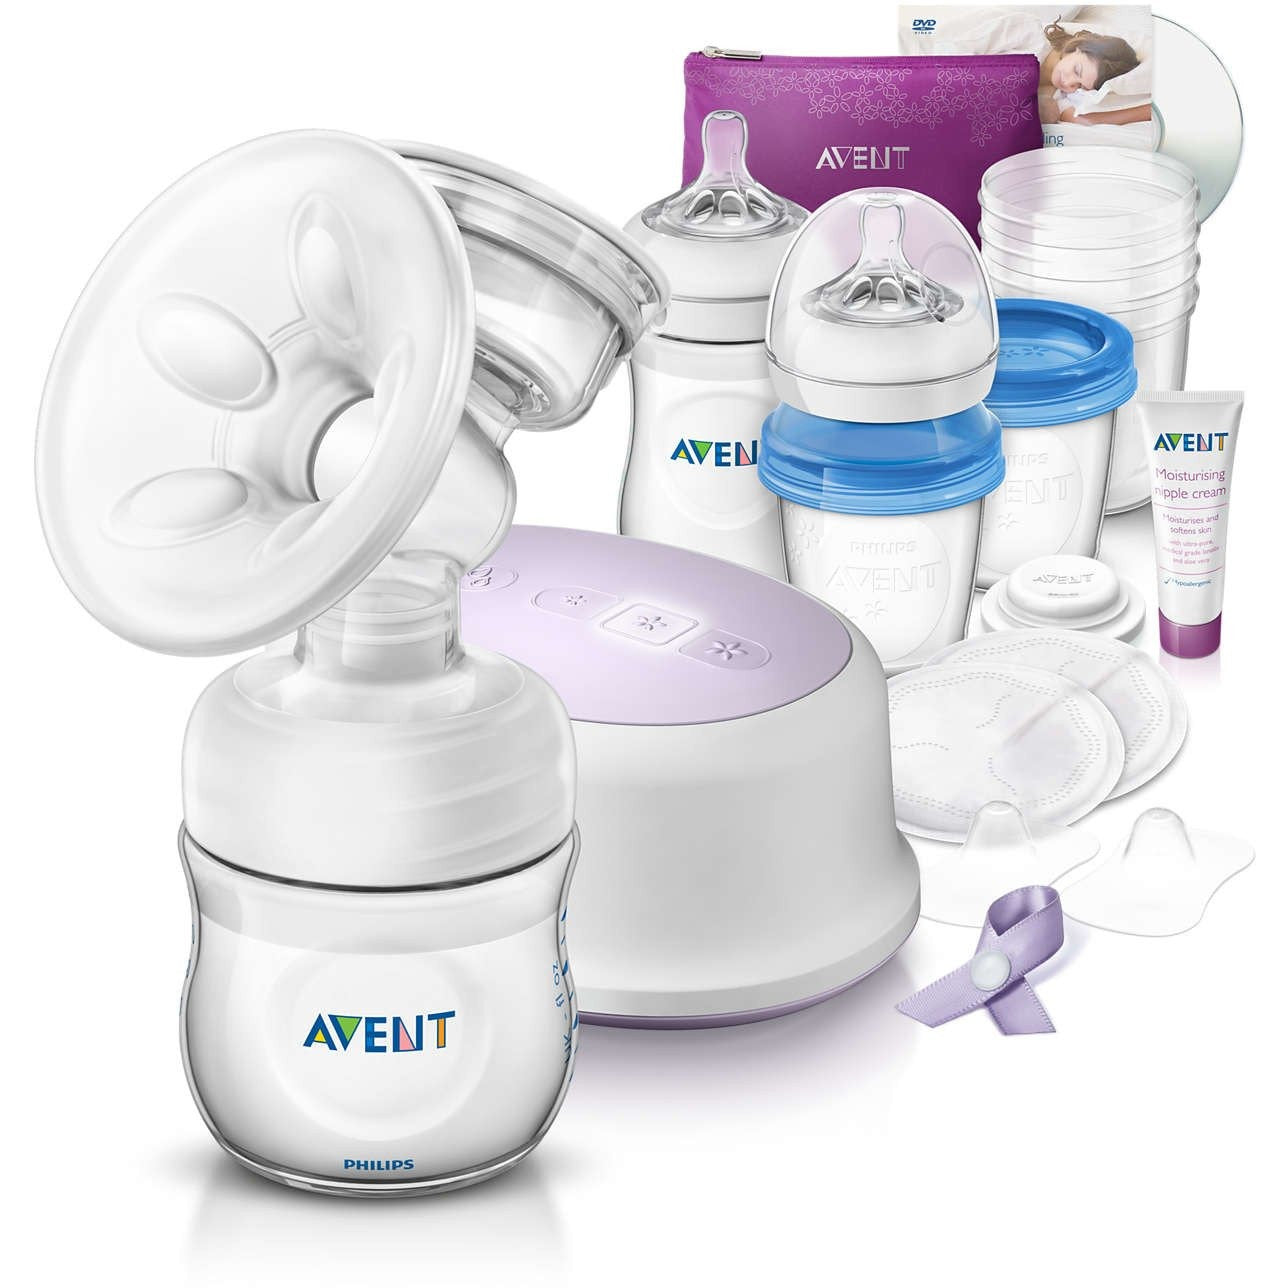 Philips Avent Breastfeeding Support Kit Bundle